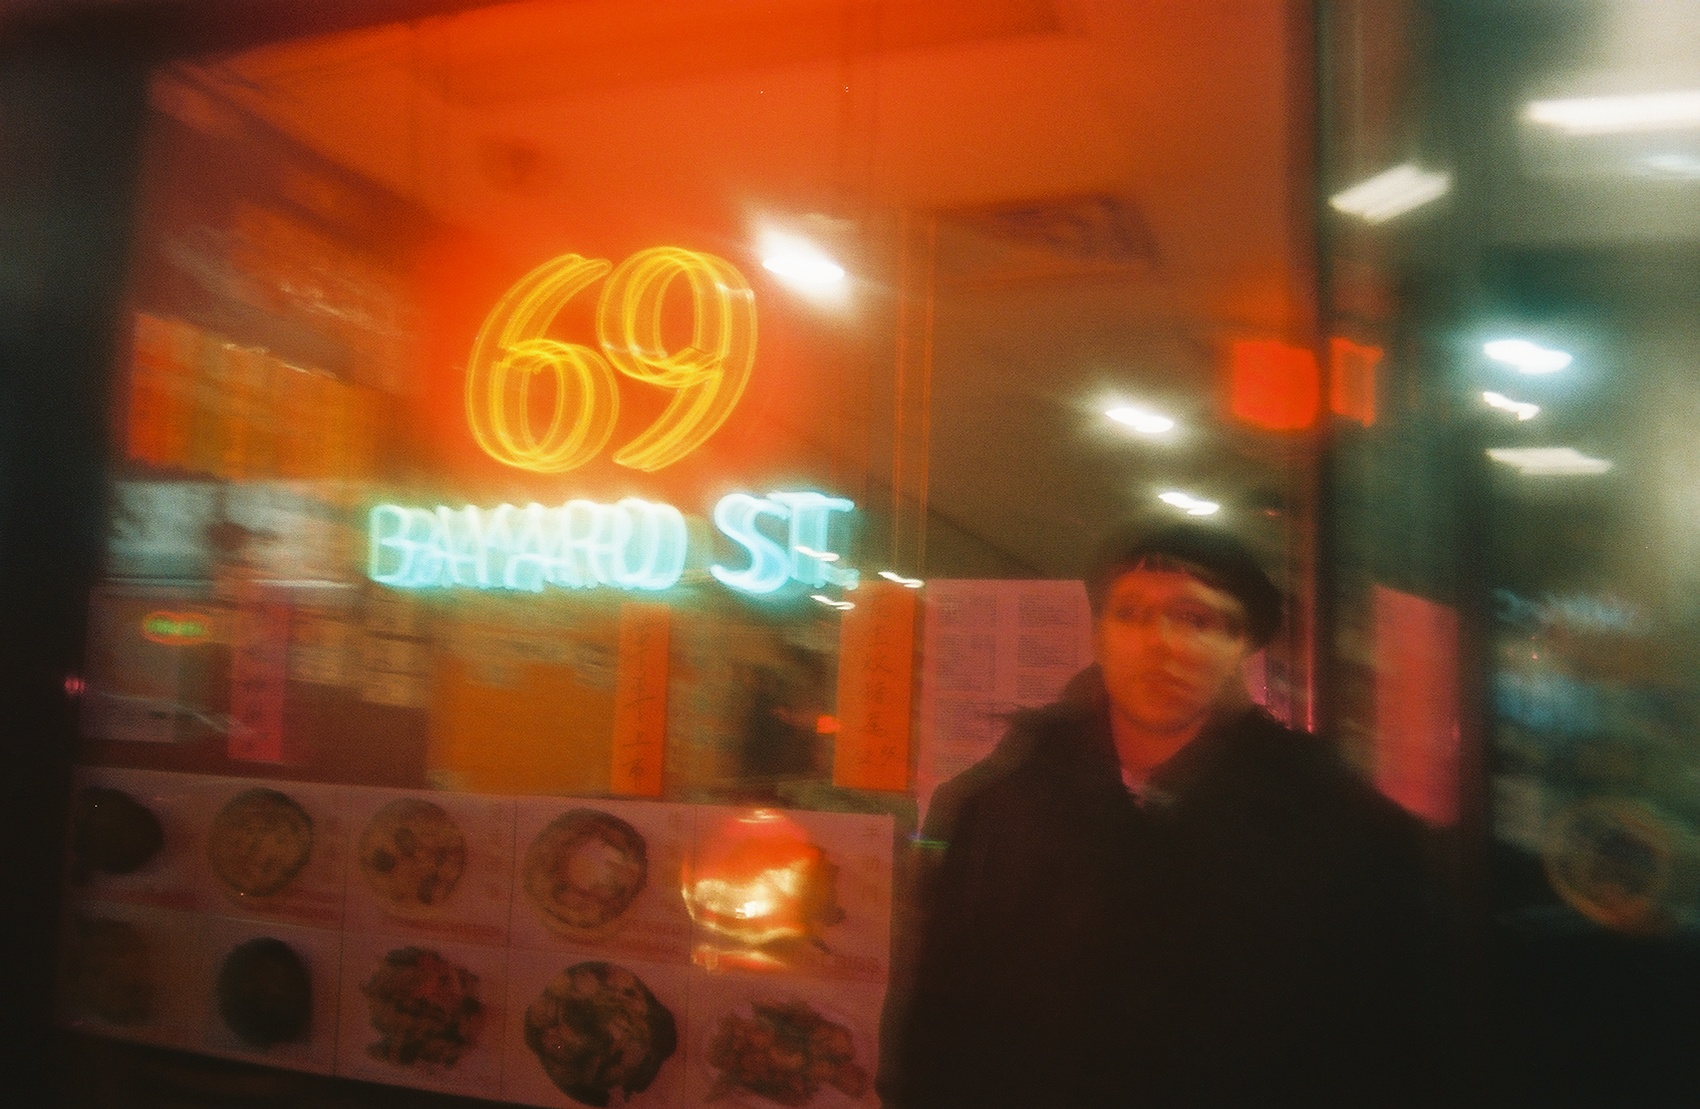 69 Bayard, for maturity reasons only.